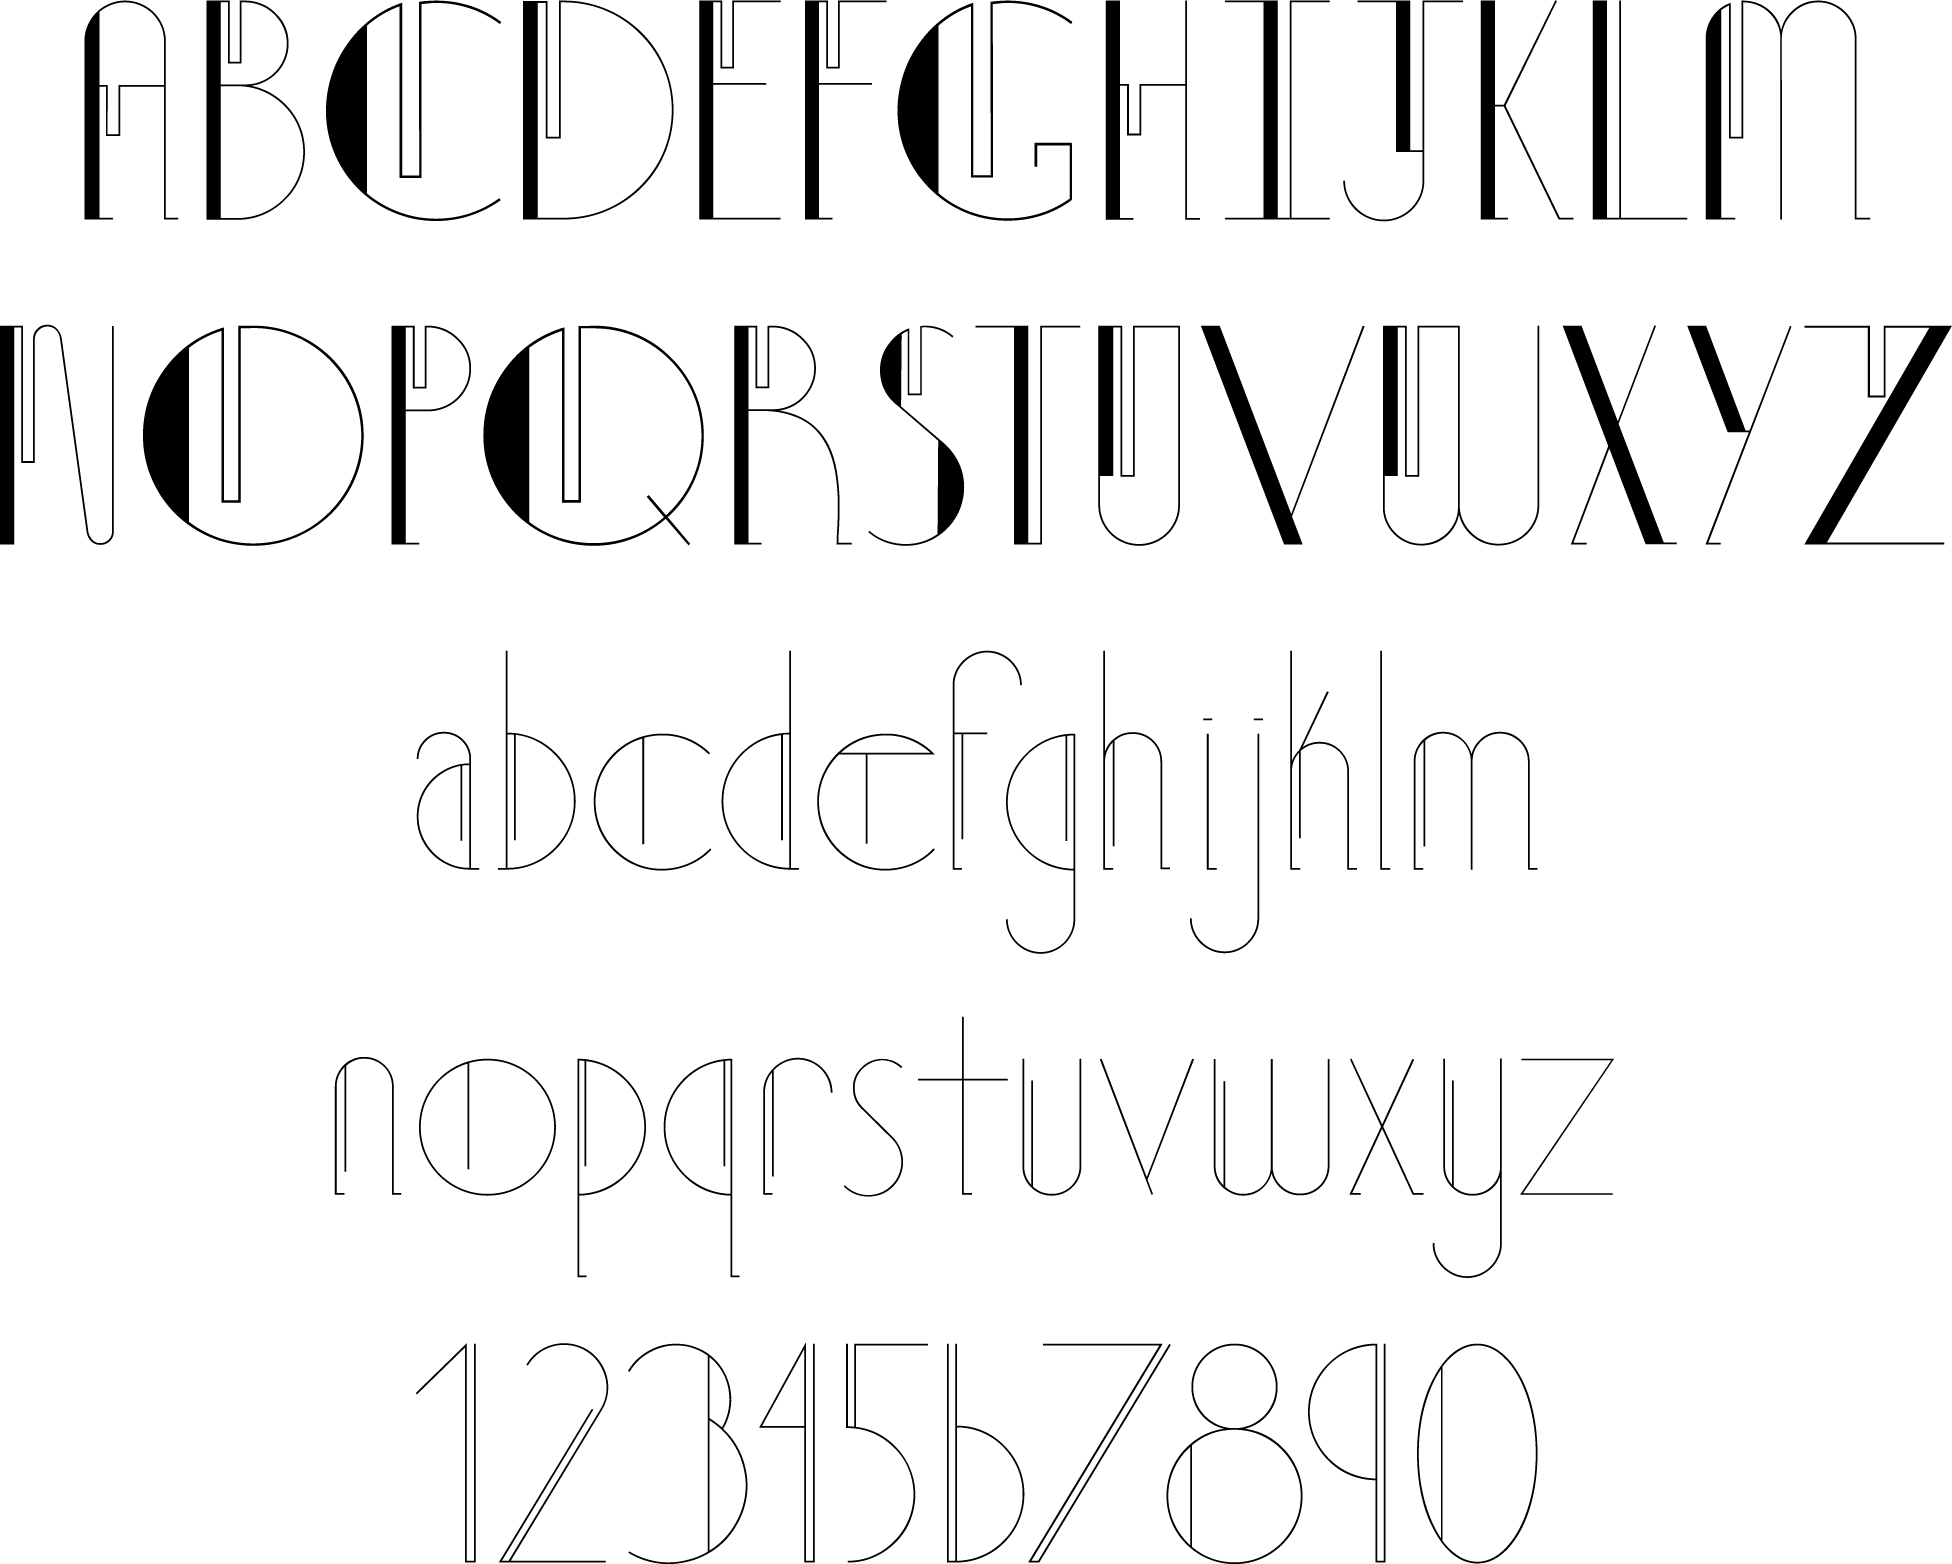 typeface2.png